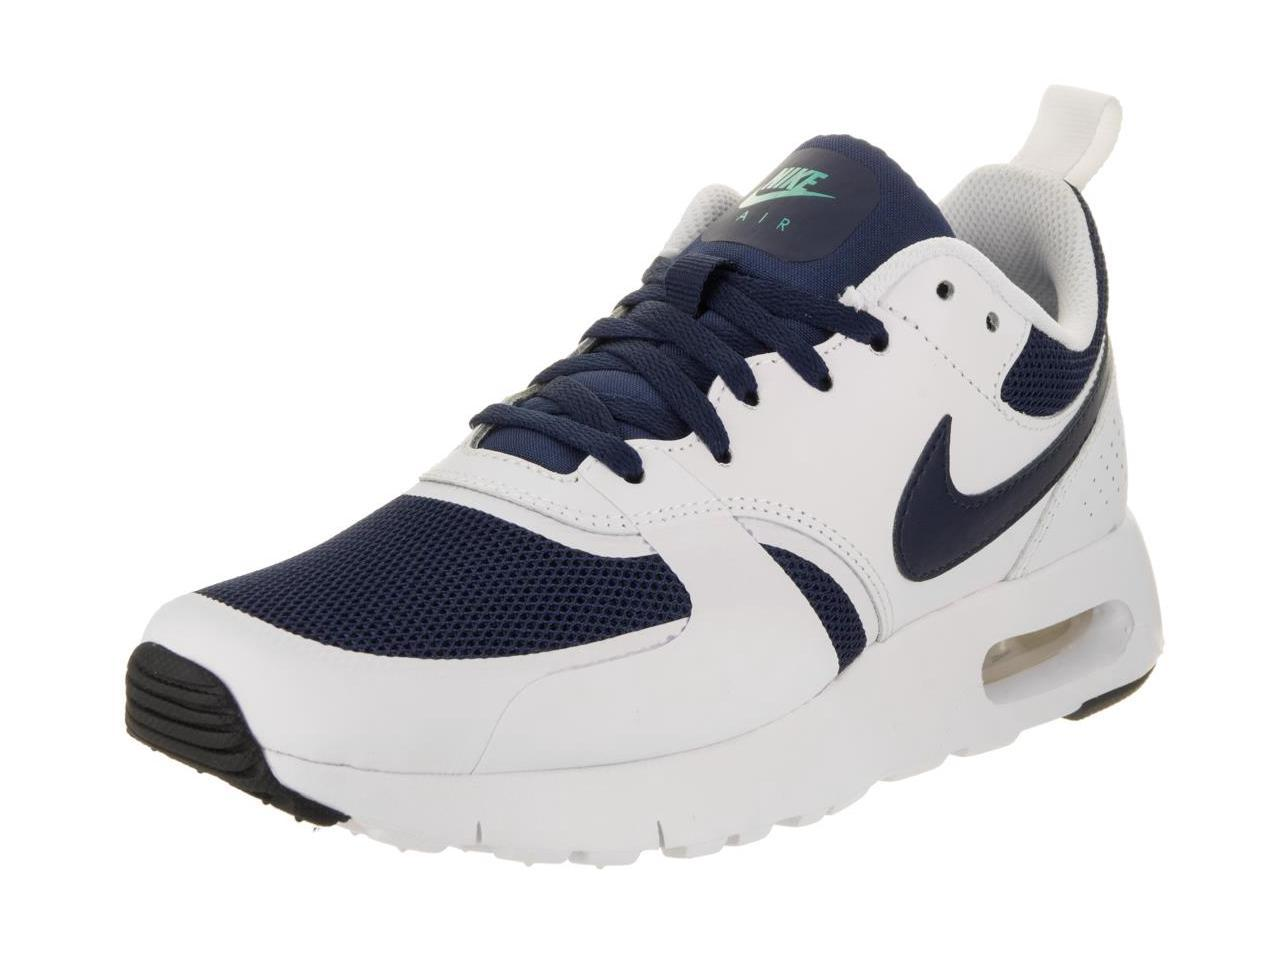 Nike Max Kids Air Max Nike Vision (GS) Running Shoe 9d3ccb